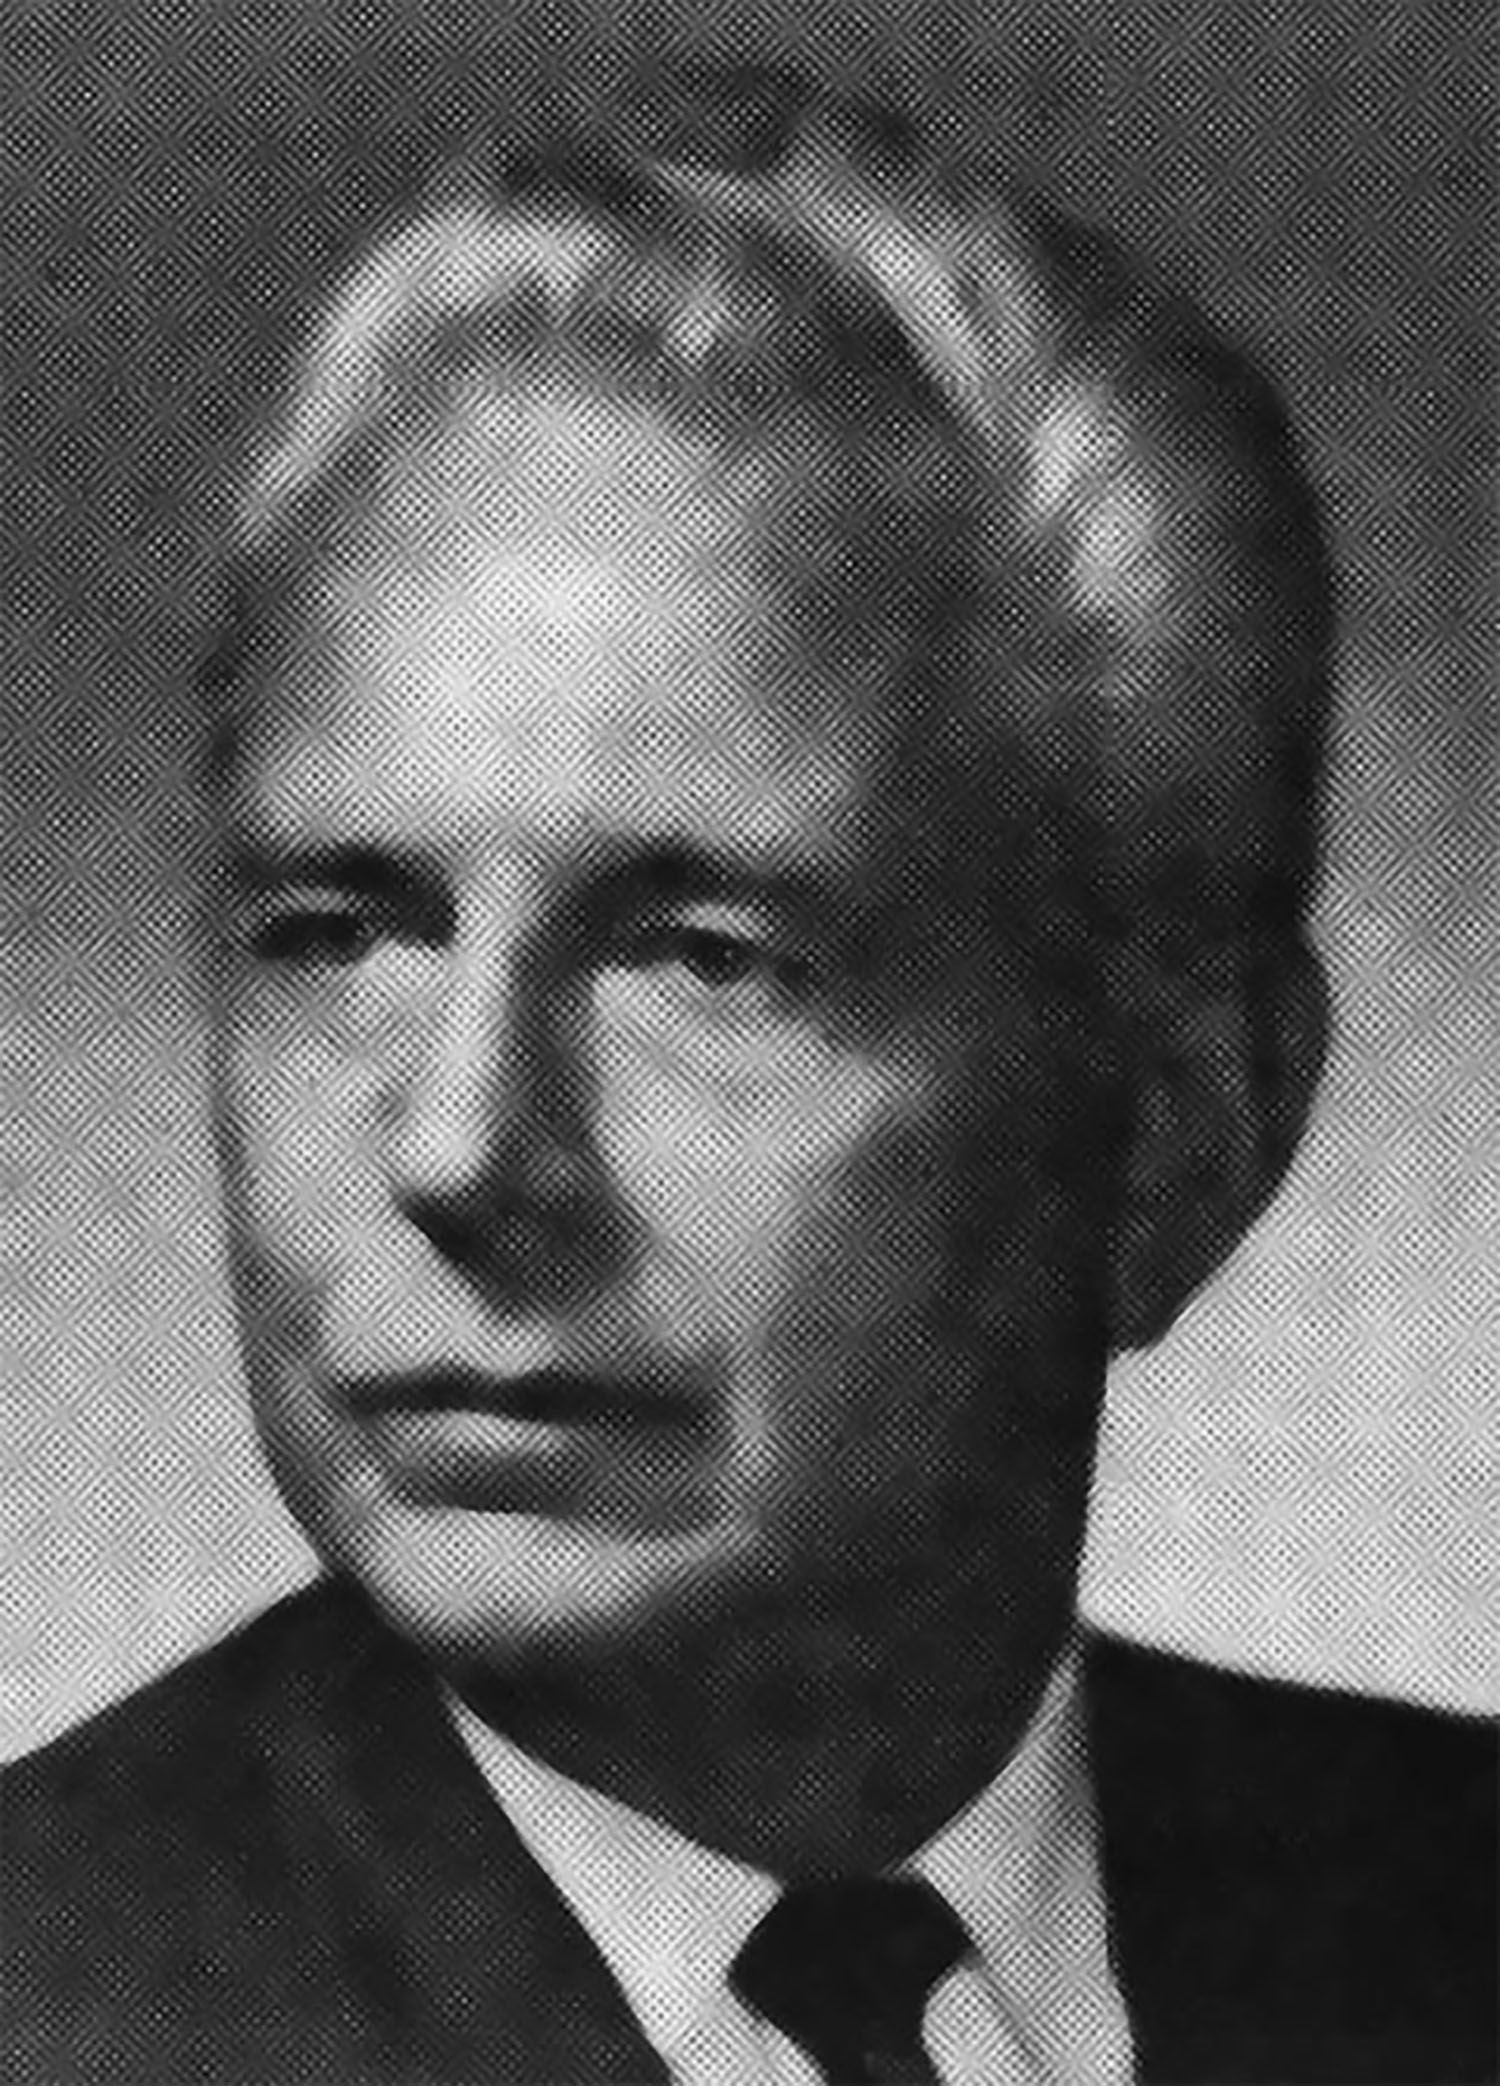 William H. Harsha 1973. Then Ranking Minority Member, Committee on Public Works, US House of Representatives.